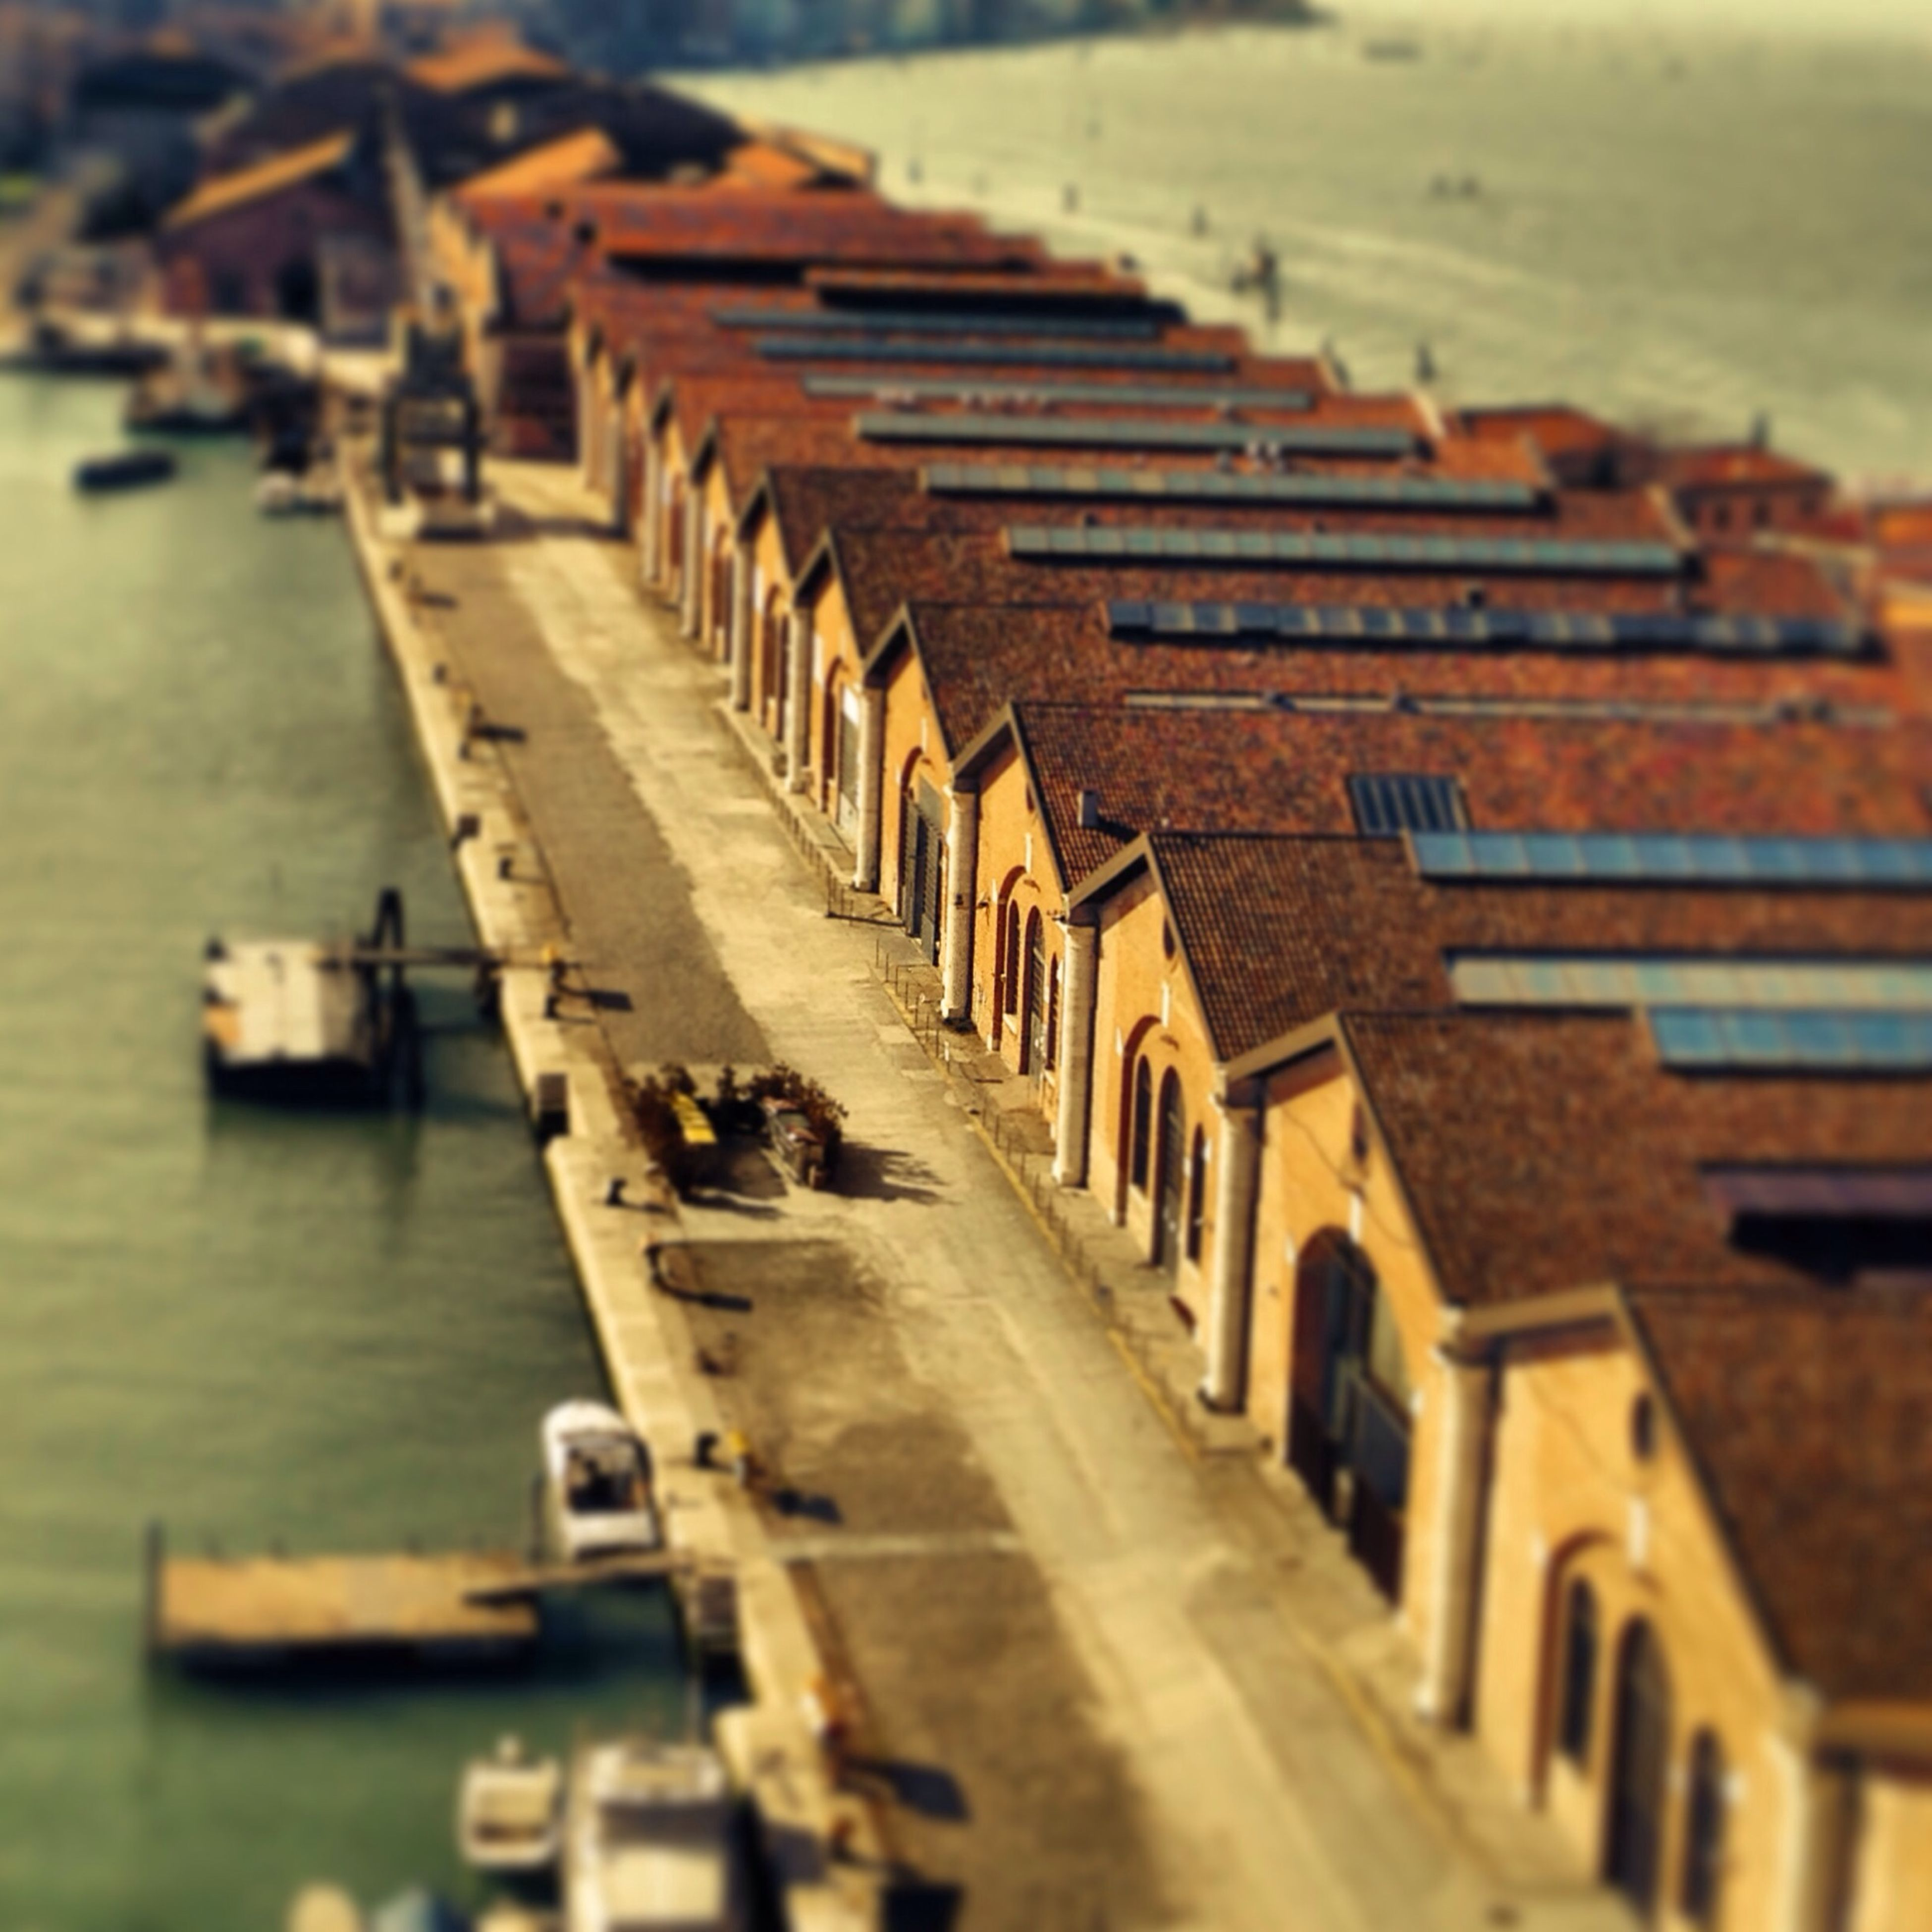 water, in a row, built structure, transportation, selective focus, architecture, building exterior, the way forward, diminishing perspective, focus on foreground, river, pier, railing, day, outdoors, incidental people, wood - material, no people, nautical vessel, street